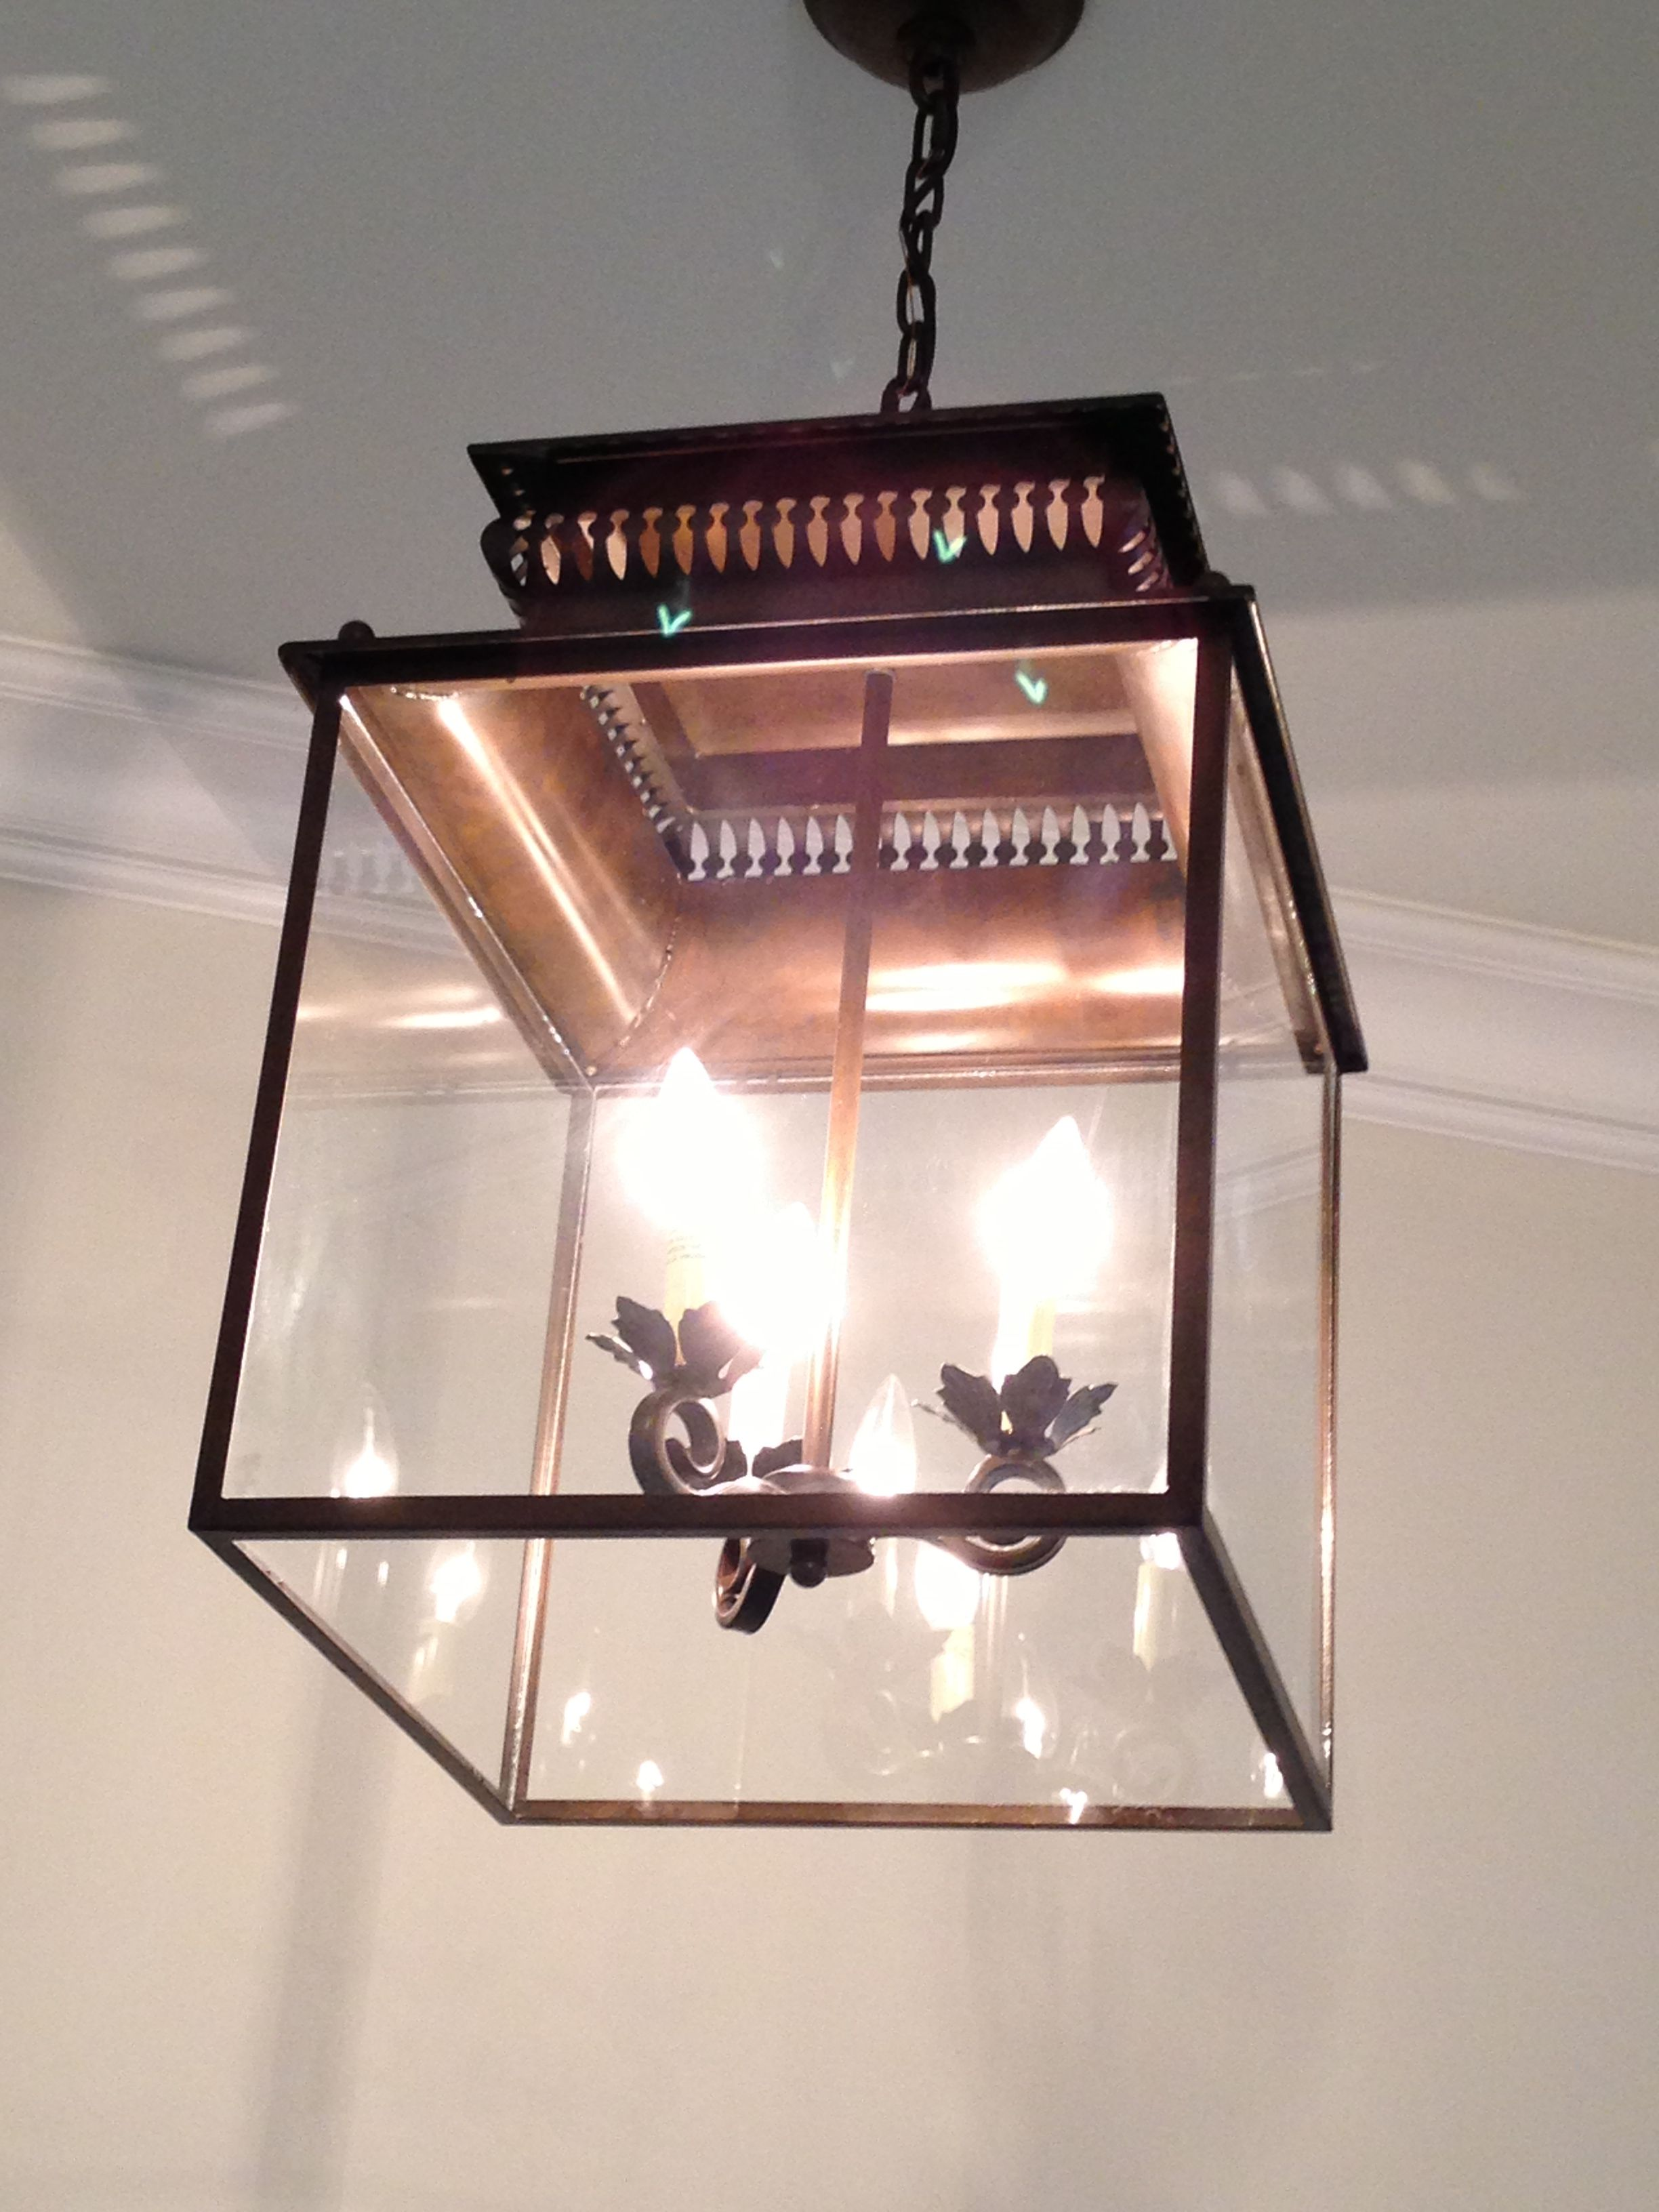 Pin by Jacqueline Mariner on Lynbrook Lighting | Pinterest ...